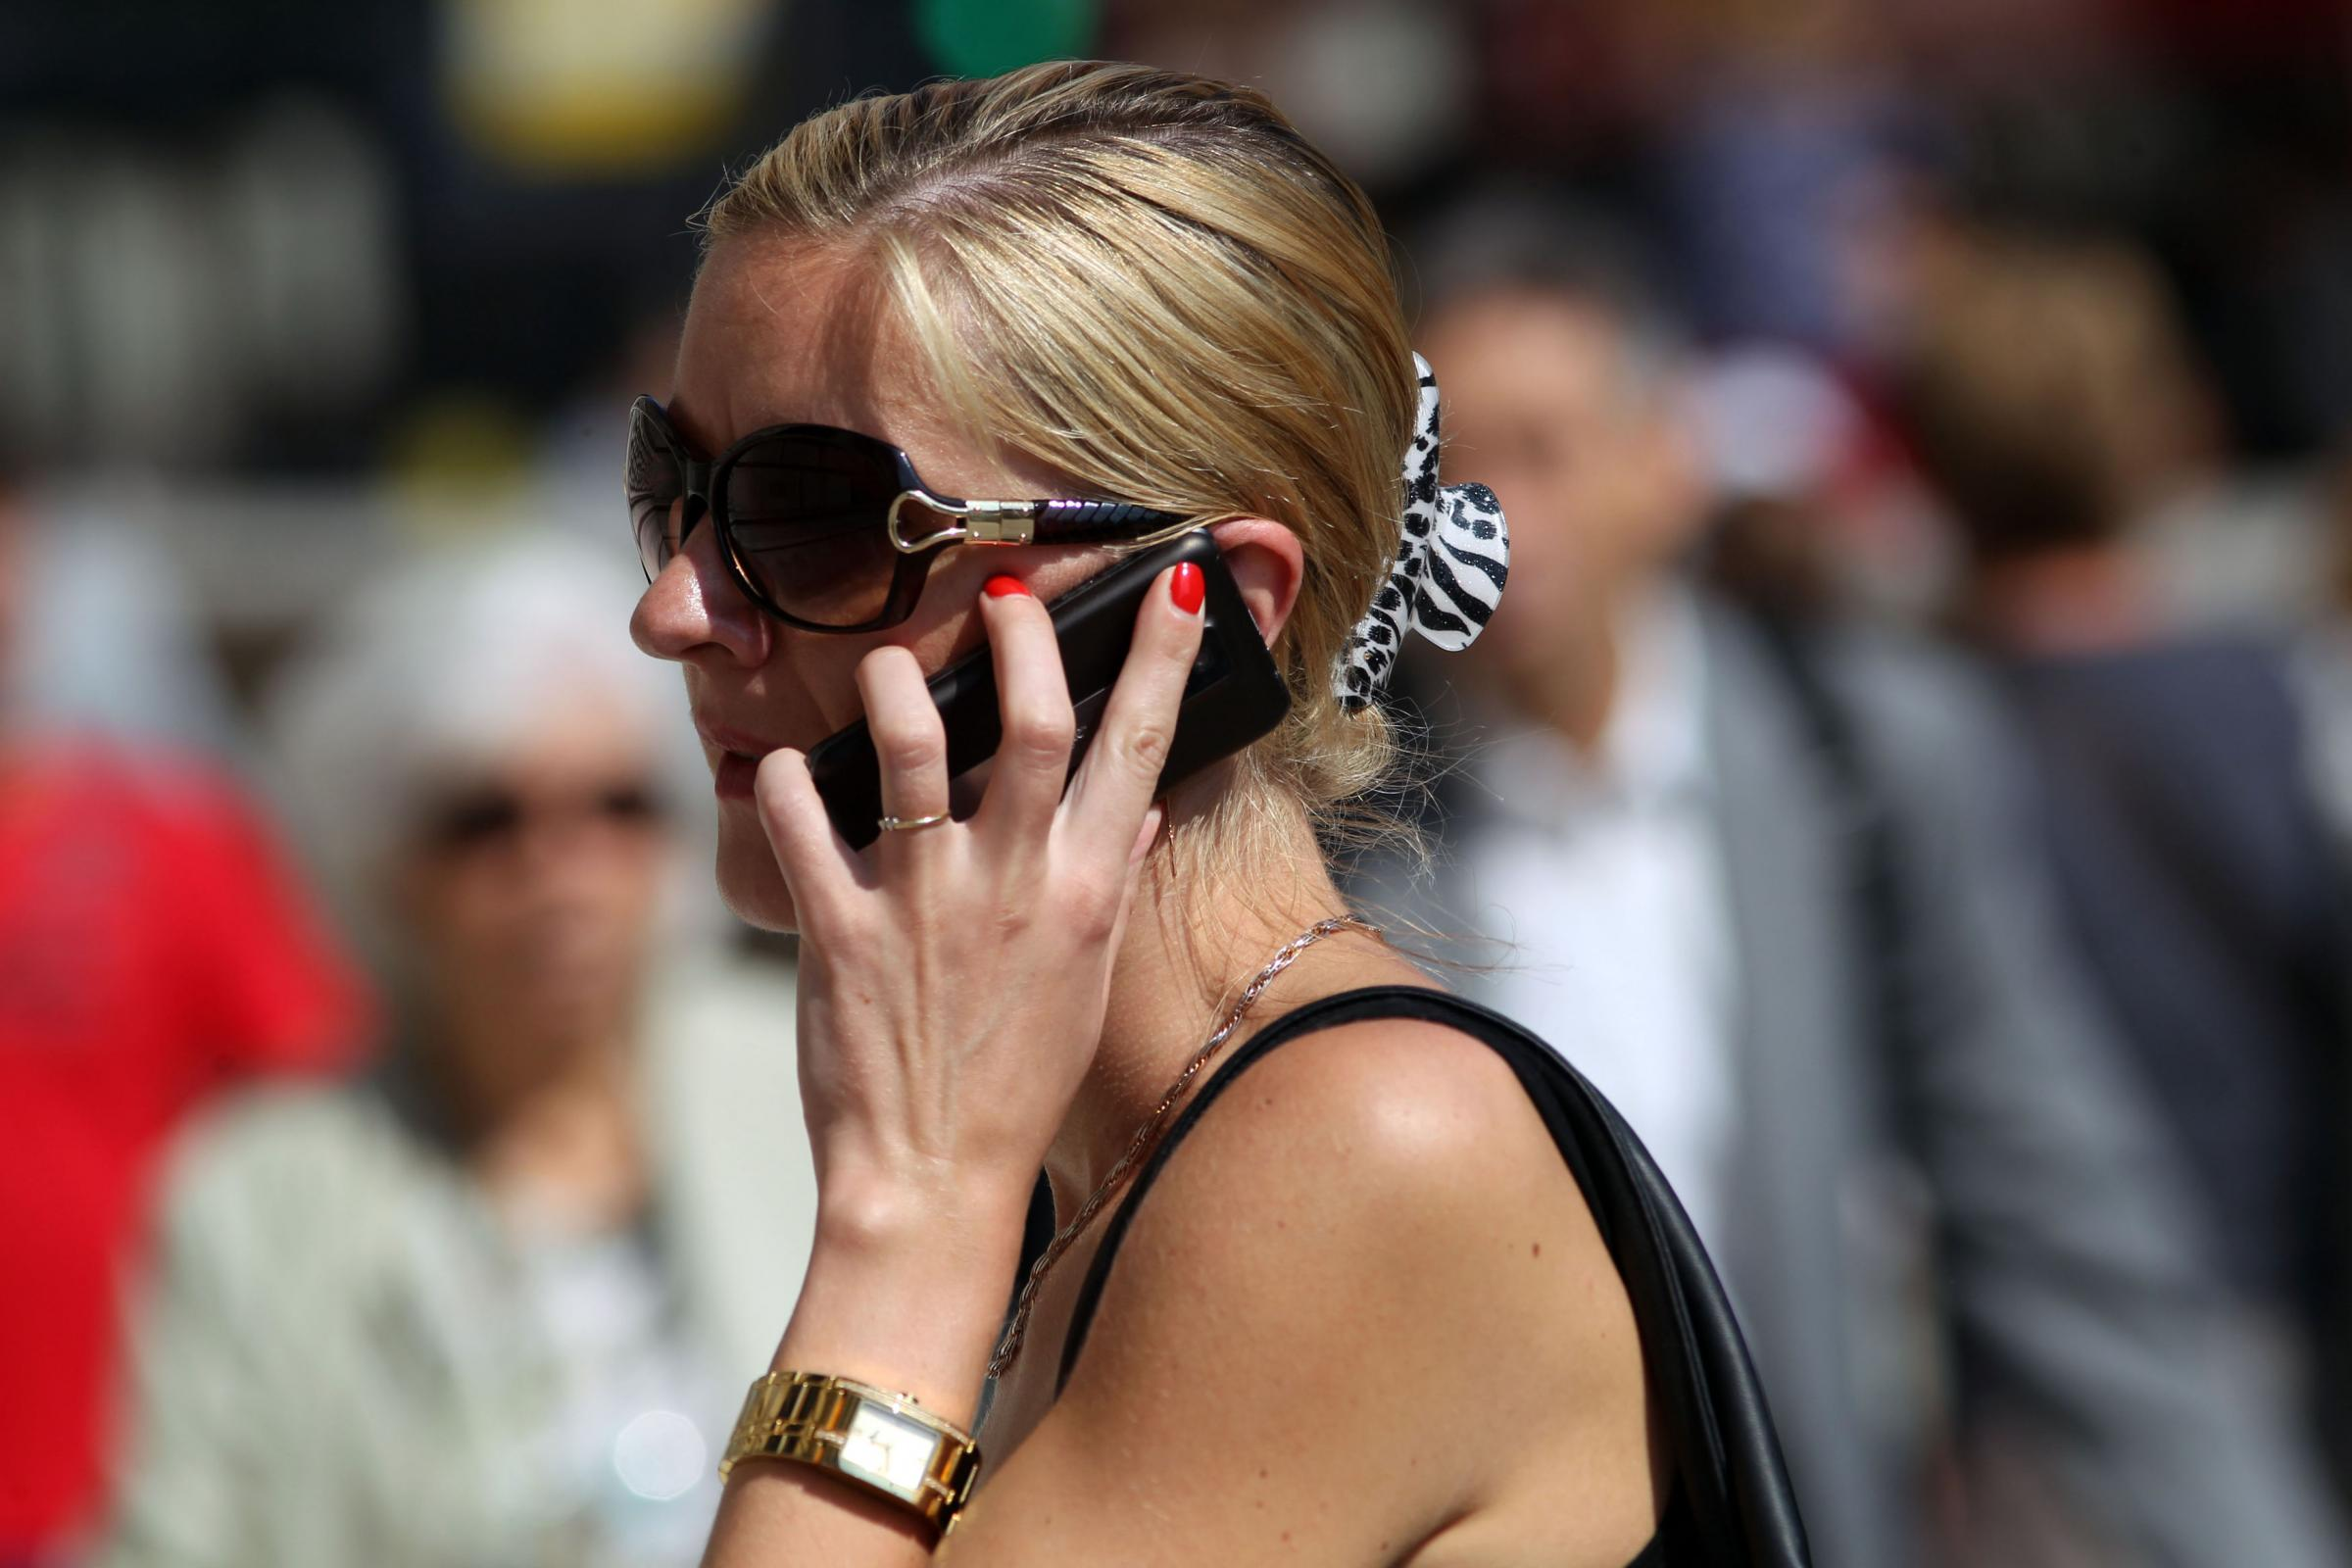 Mobile roaming charges end in the European Union